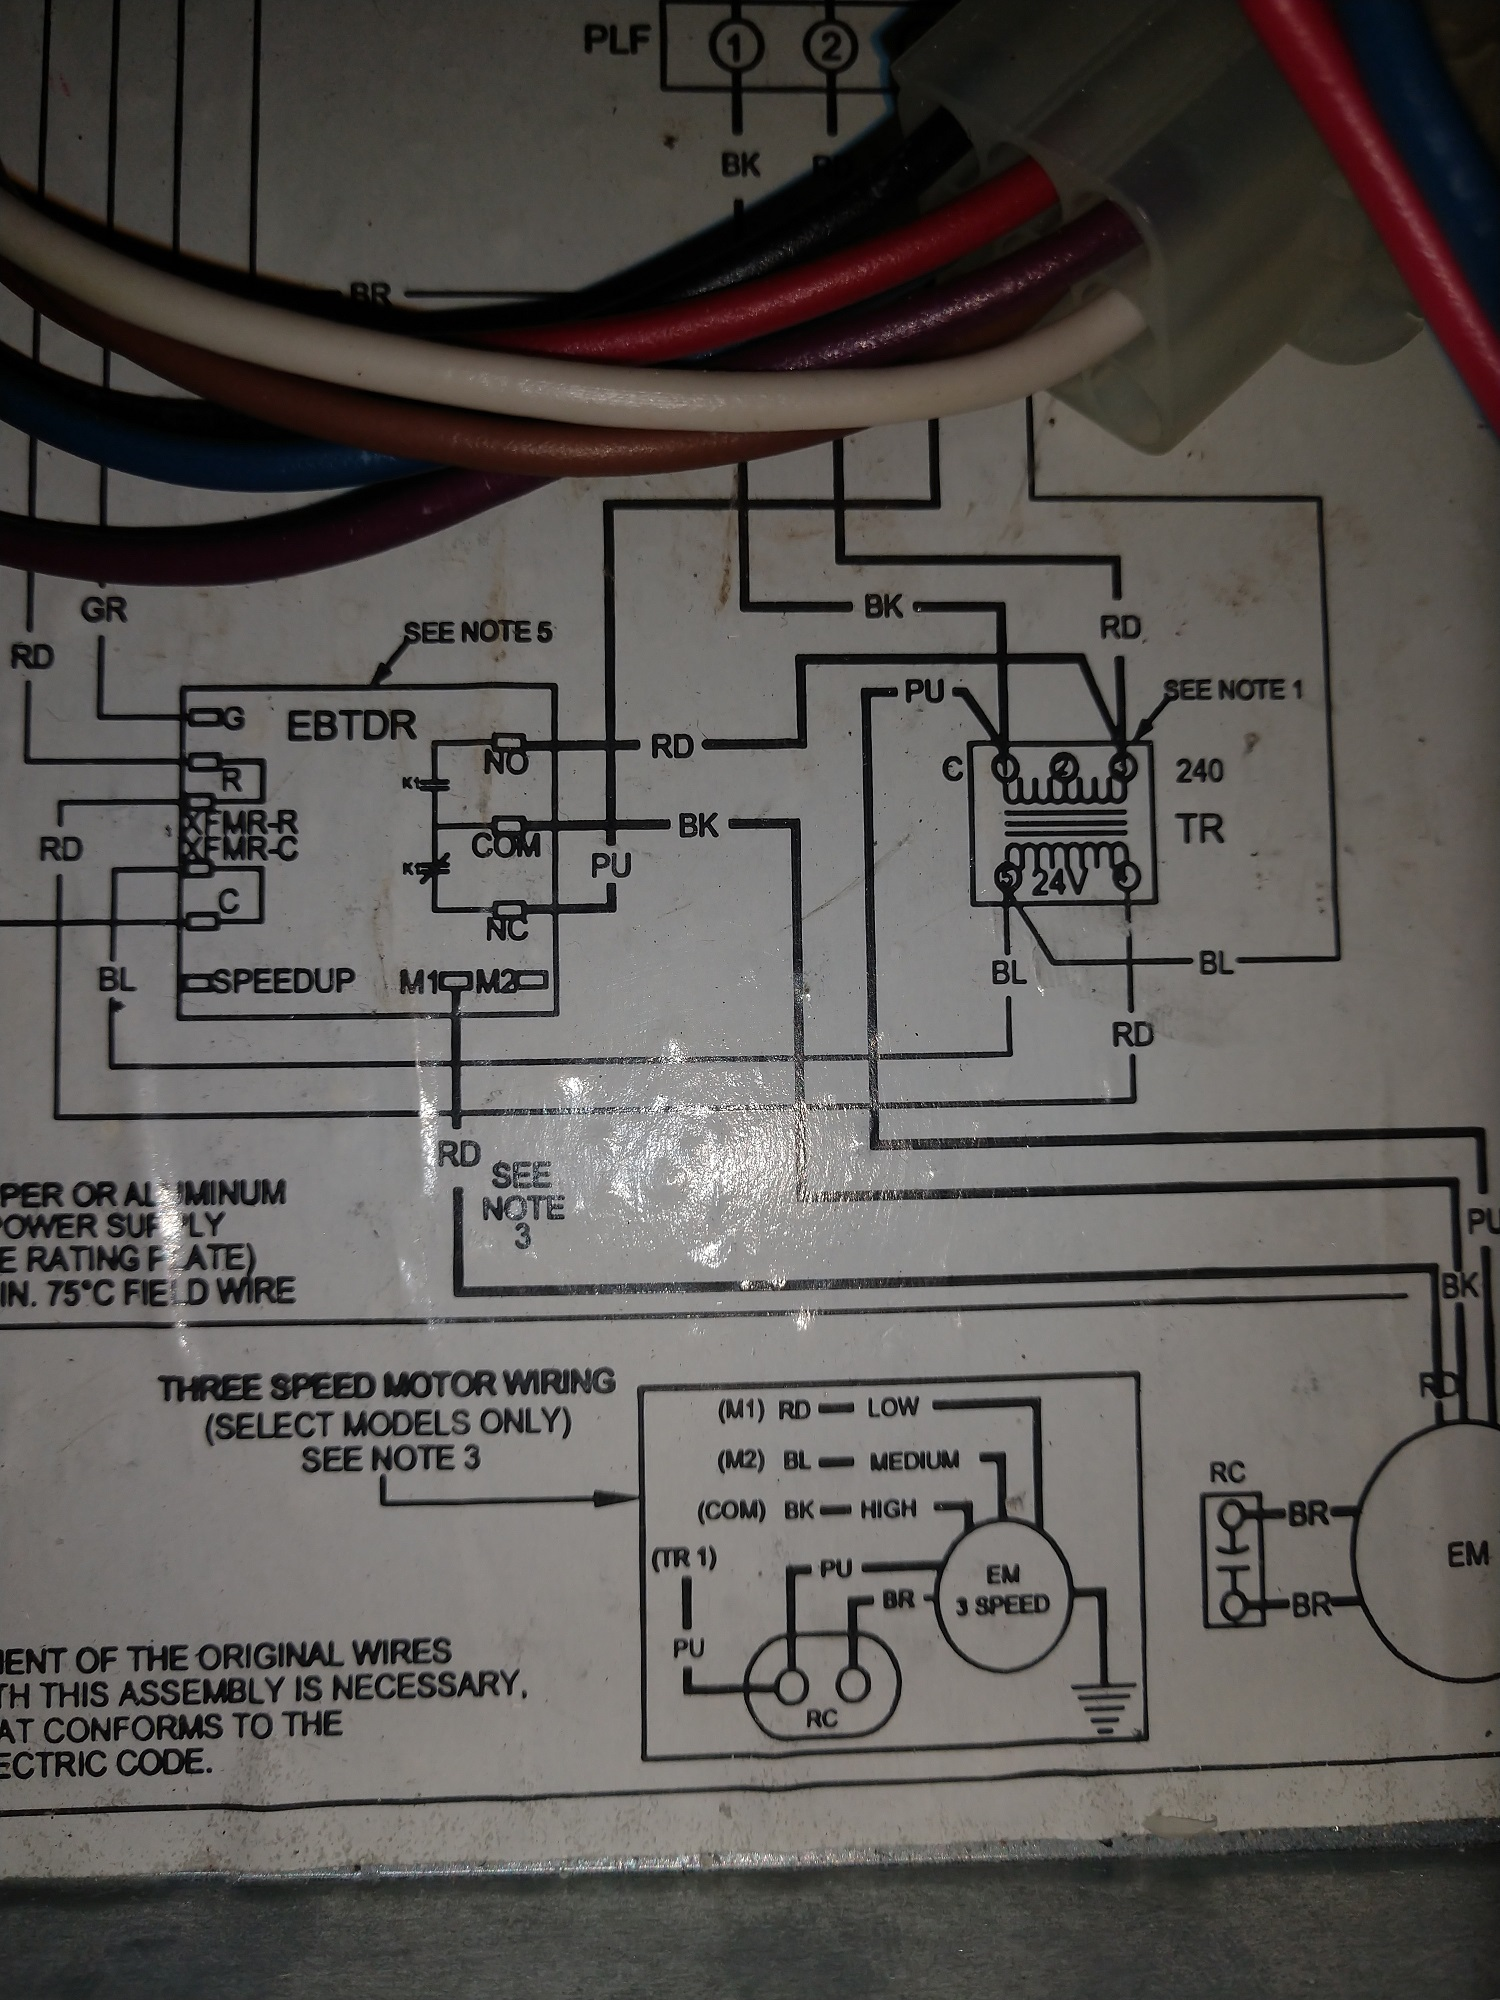 hight resolution of the old motor has five wires plus a ground the wiring diagram is at the bottom of the picture labeled as three speed motor wiring old